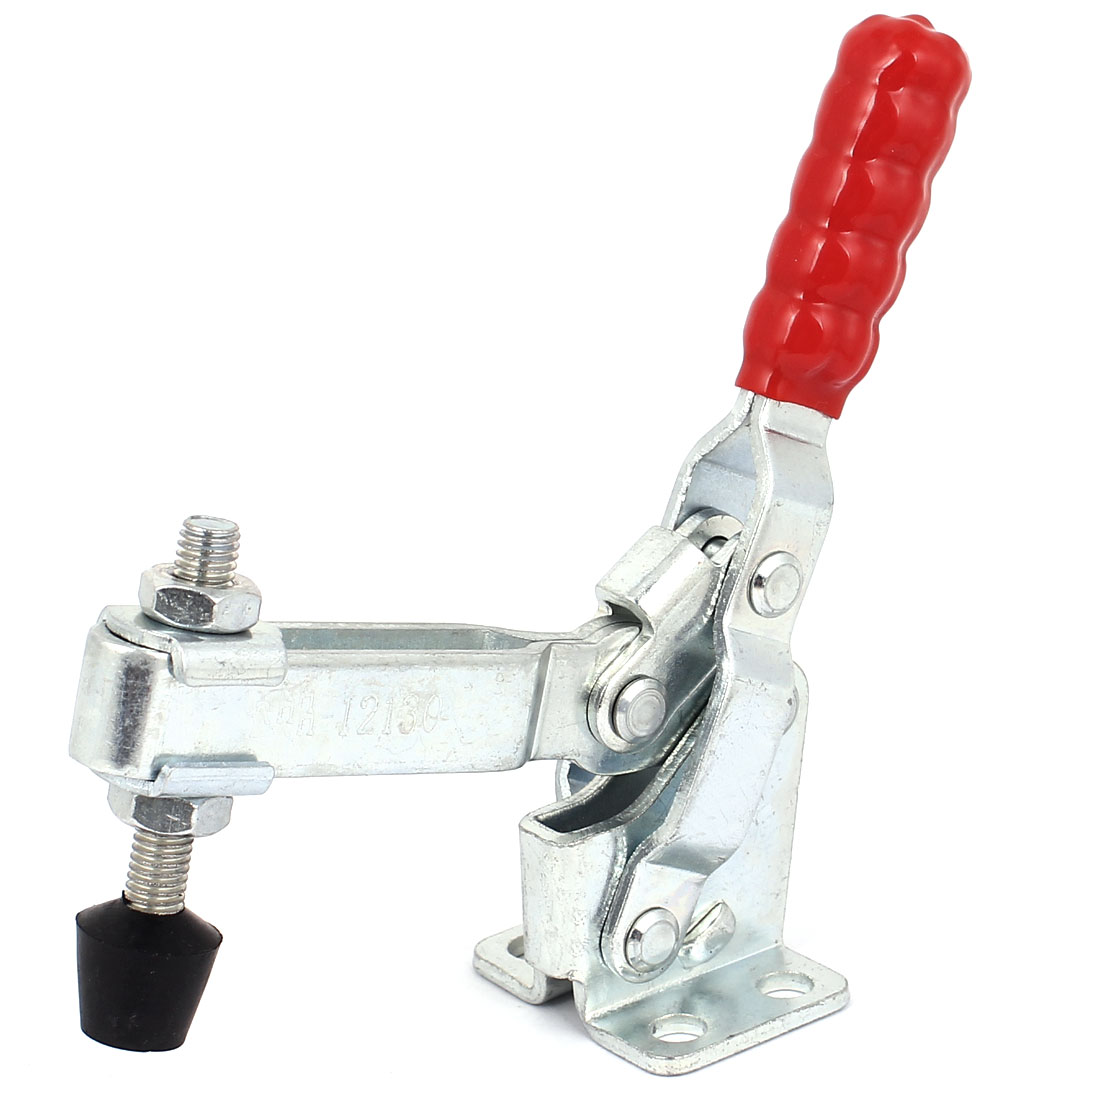 227Kg 500 Lbs Capacity Quick Hold Vertical Type Toggle Clamp 12130